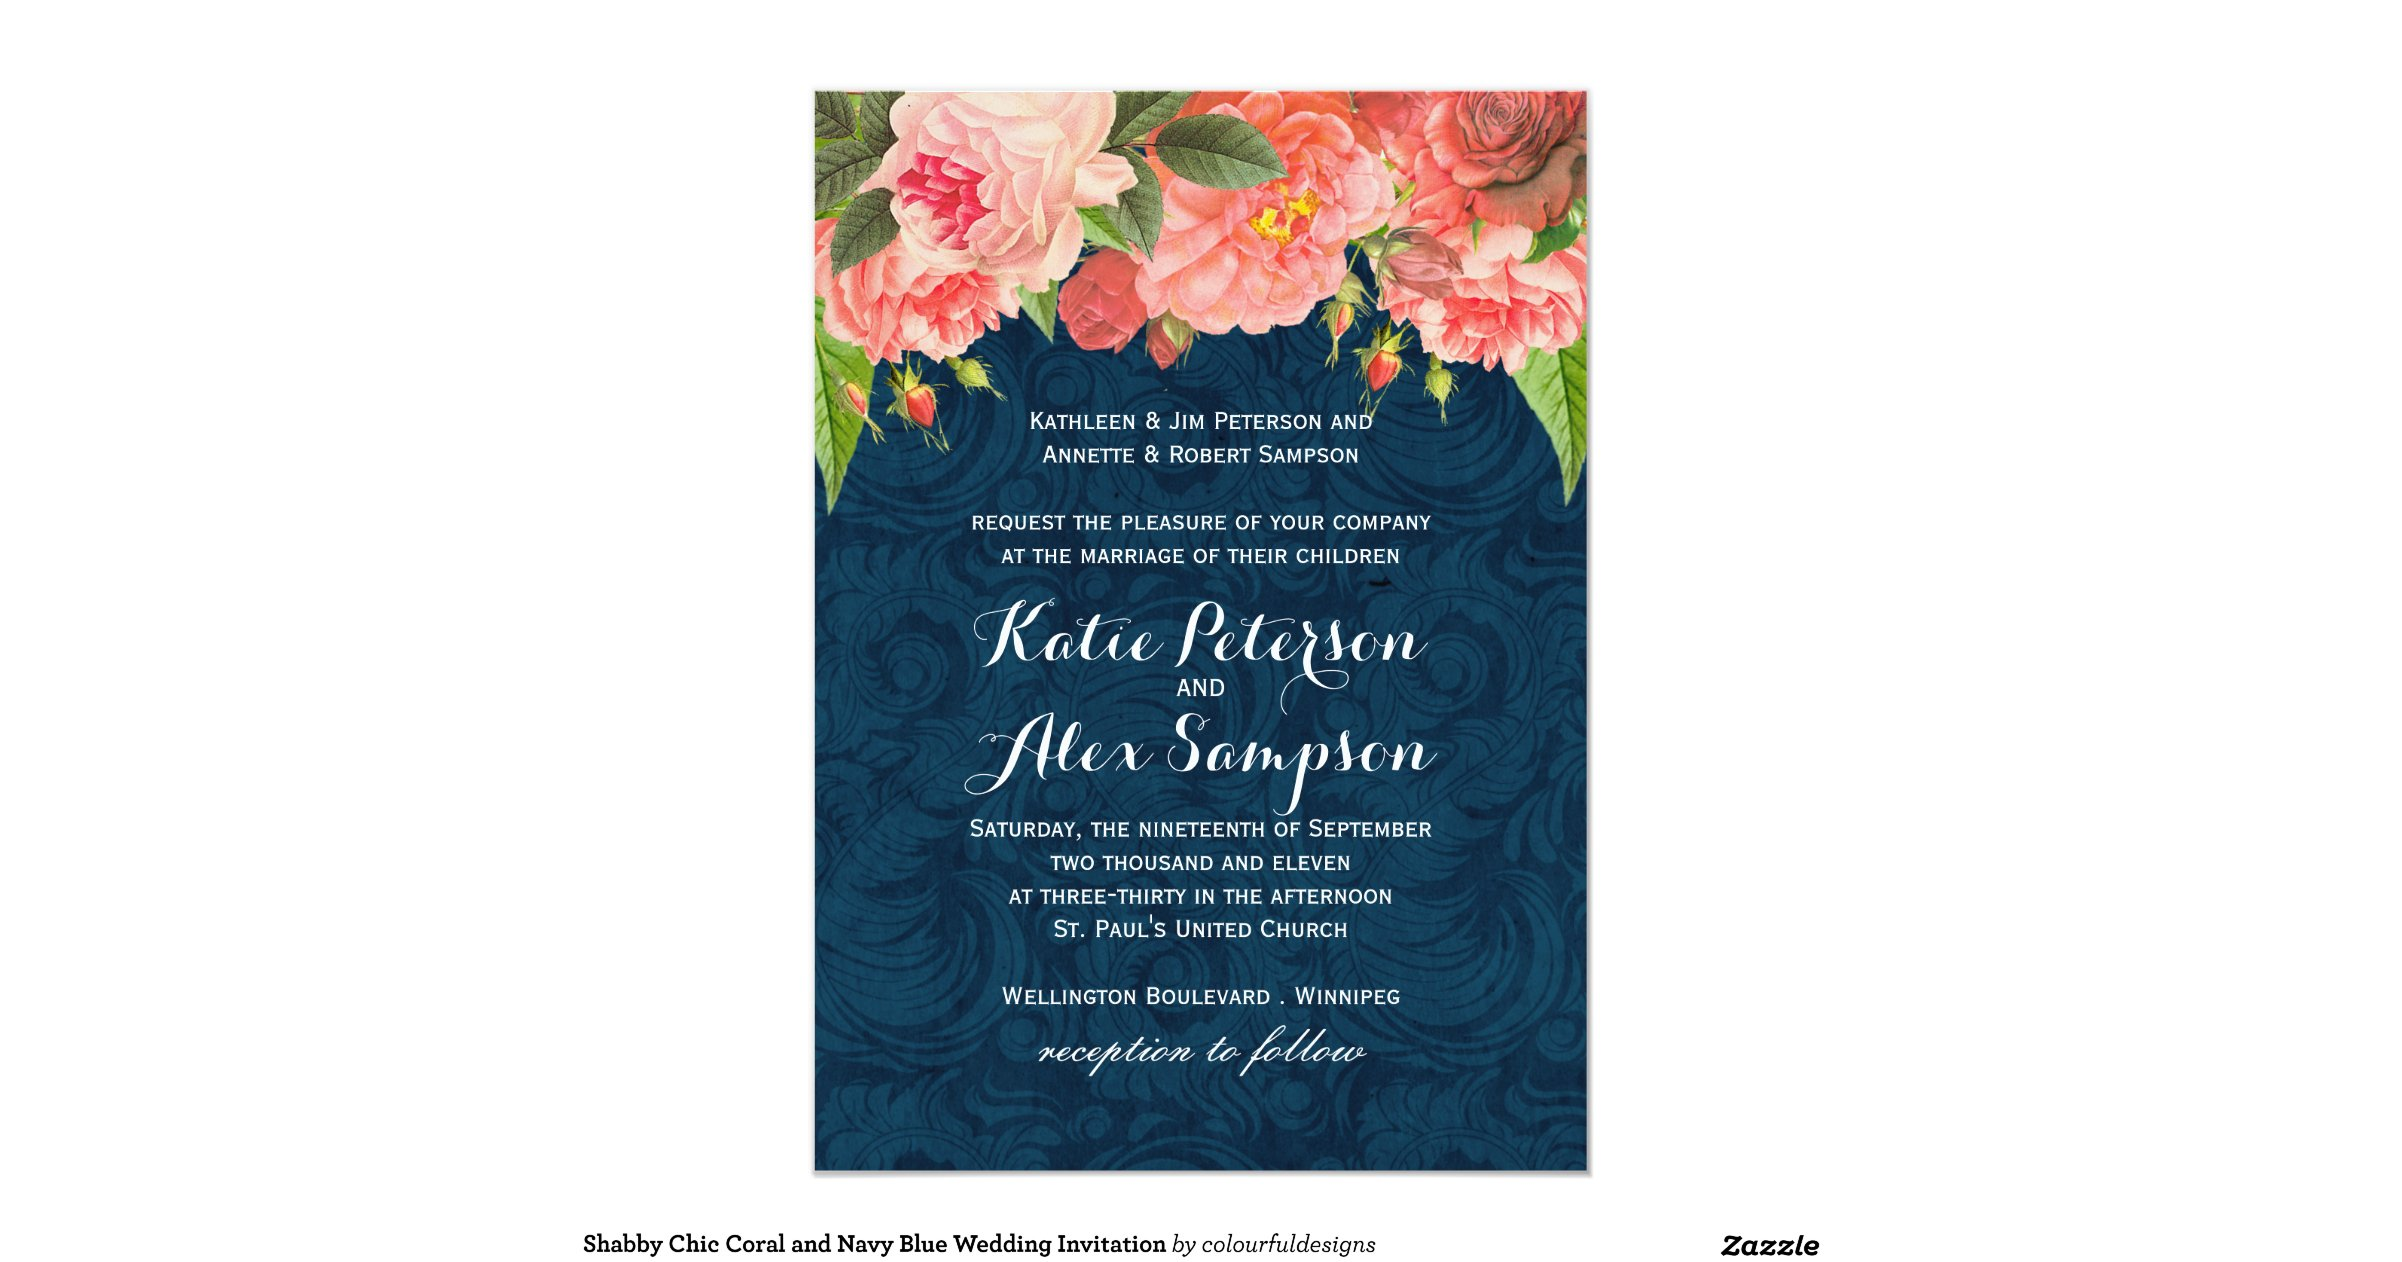 Blue And Coral Wedding Invitations: Shabby_chic_coral_and_navy_blue_wedding_invitation